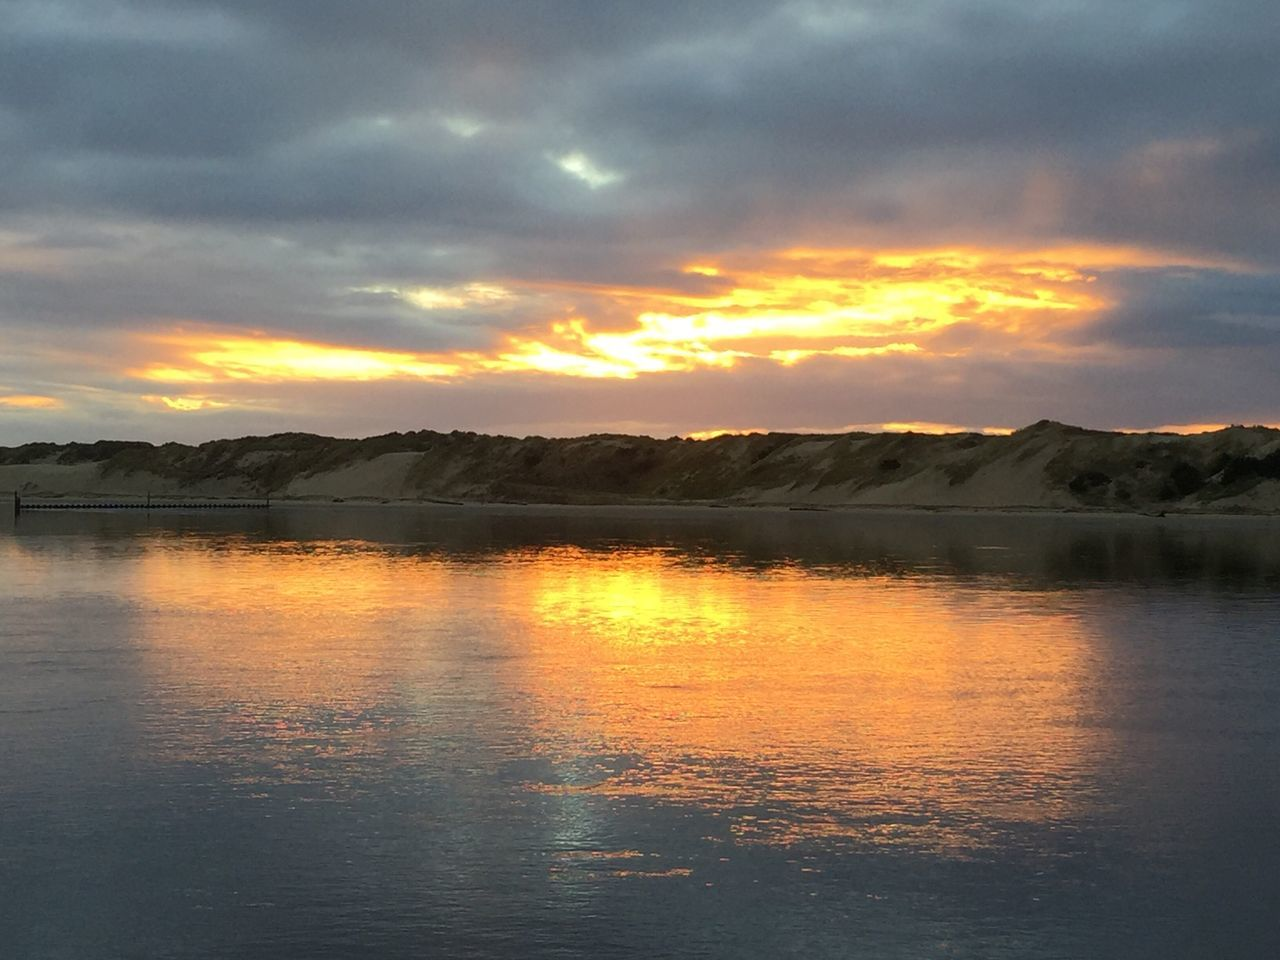 Sunset Beauty In Nature Reflection Water Tranquil Scene Idyllic Sky Tranquility Scenics No People Waterfront Dramatic Sky Vibrant Color : Siuslaw River, Oregon Coast